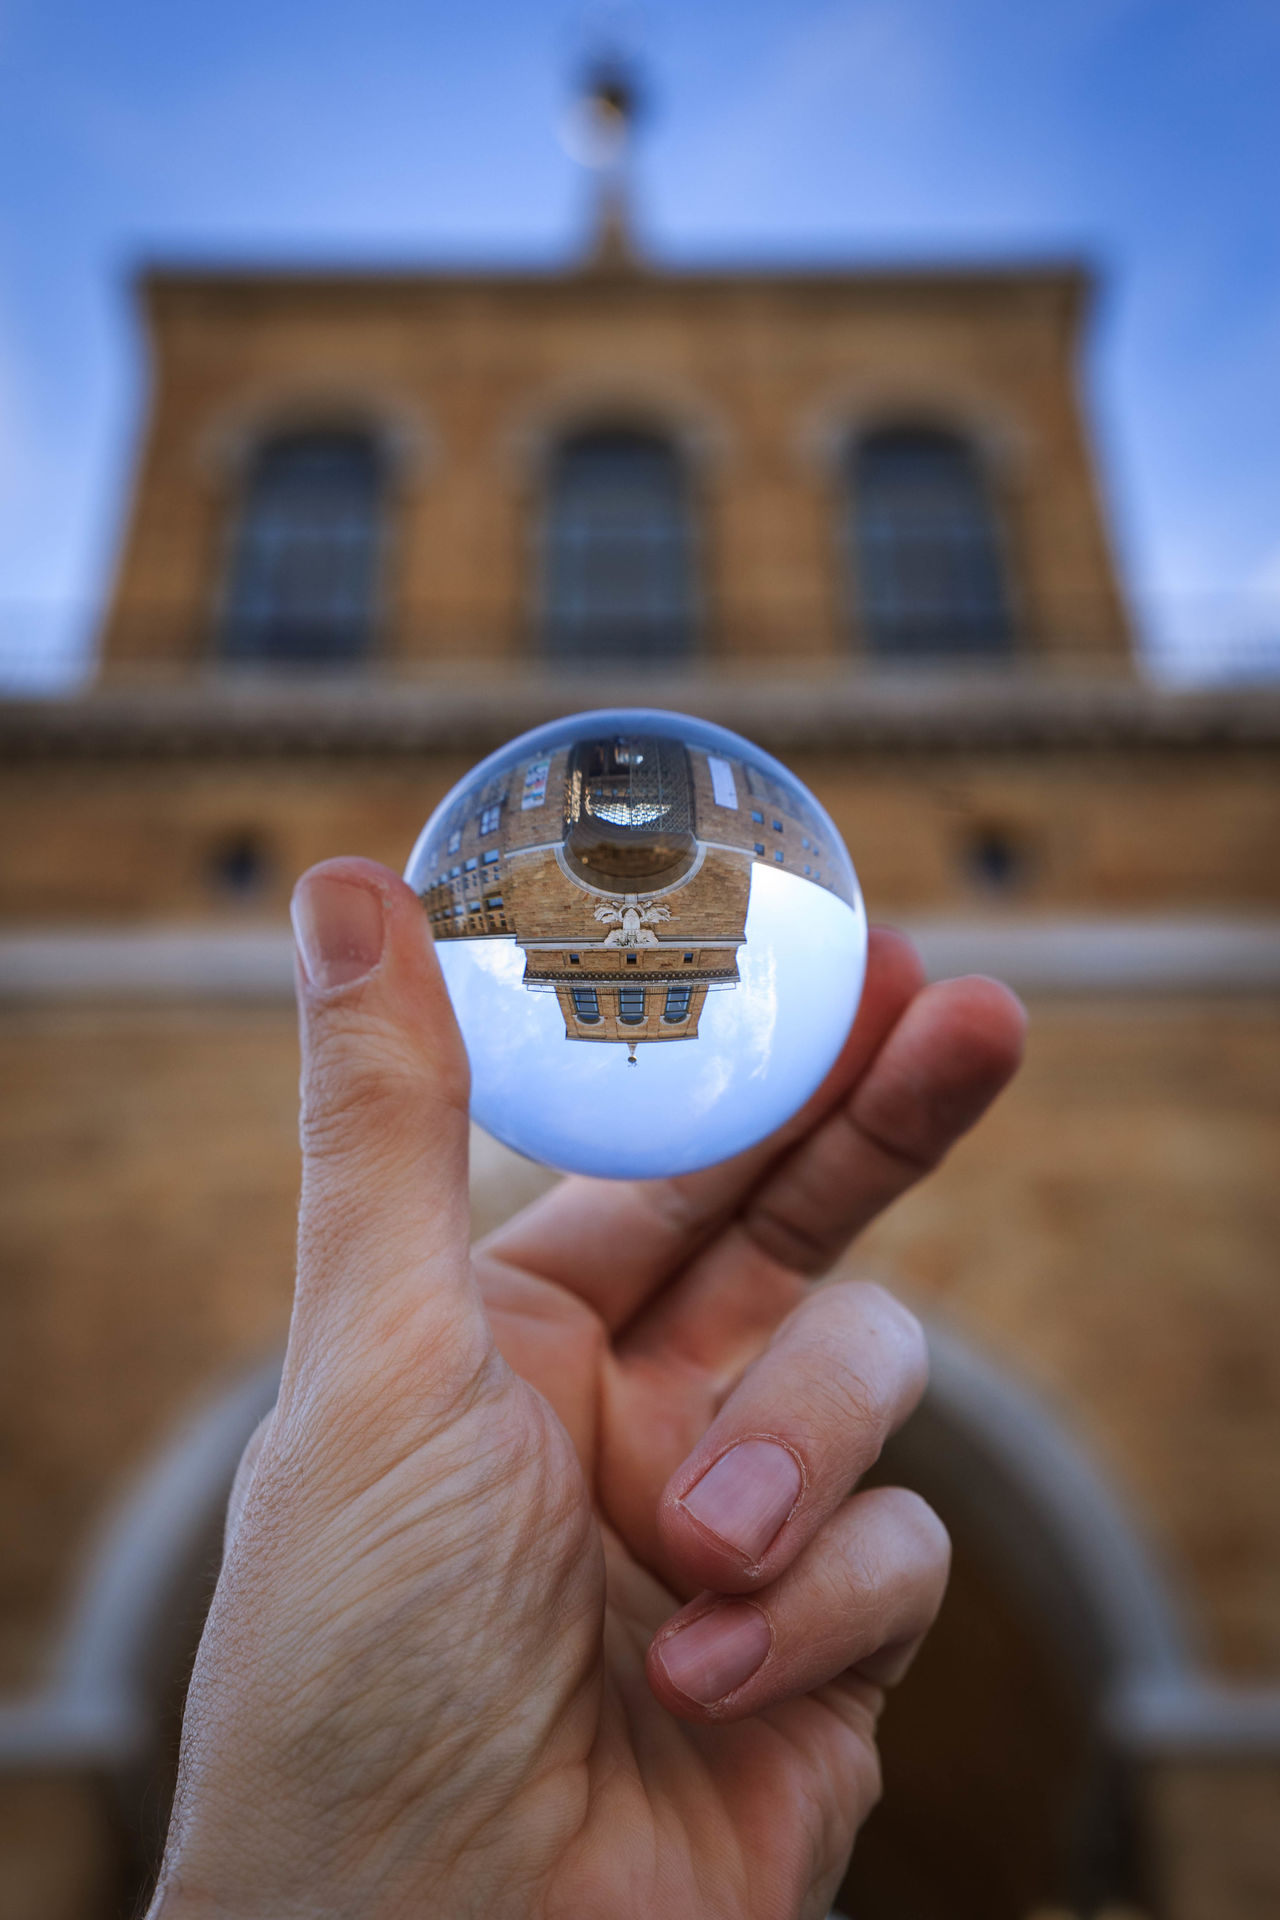 Human Hand Human Body Part Holding Personal Perspective One Person Travel Destinations Building Exterior Architecture Close-up Day Canon 6D Tamron Gijón Asturias España SPAIN Esfera Sphere Focus On Foreground Built Structure People One Man Only Adult Outdoors